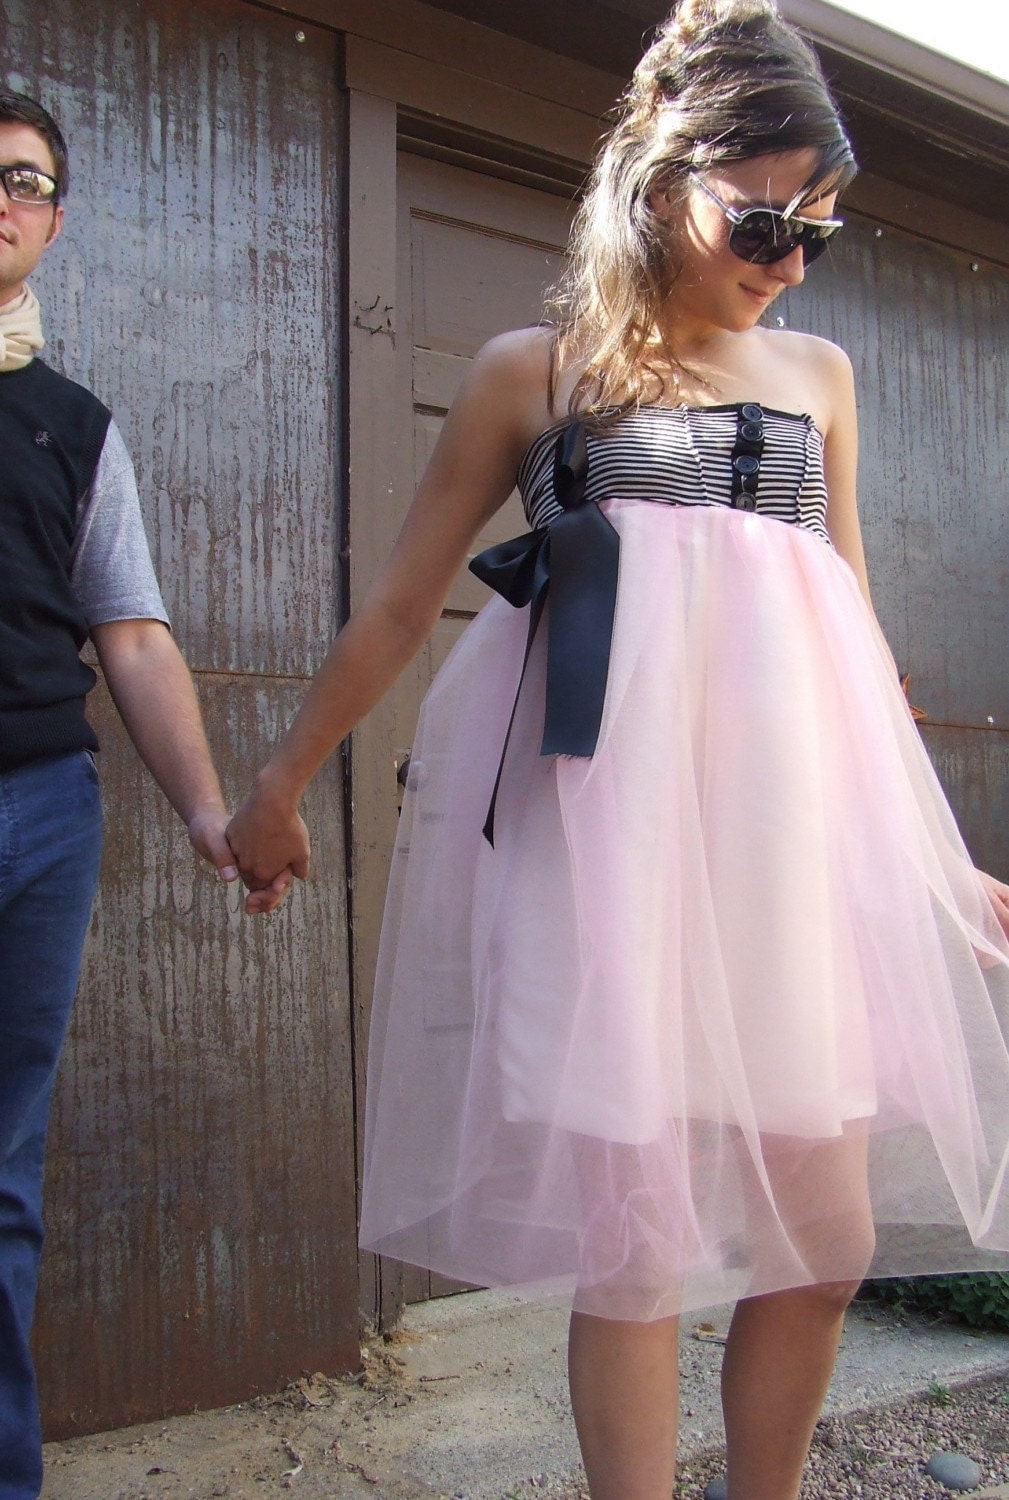 SPECIAL SAMPLE PRICE - Tutu Strapless Bubble Party Dress - Black, White Sailor Style Top and Pink Tulle Tutu Bottom